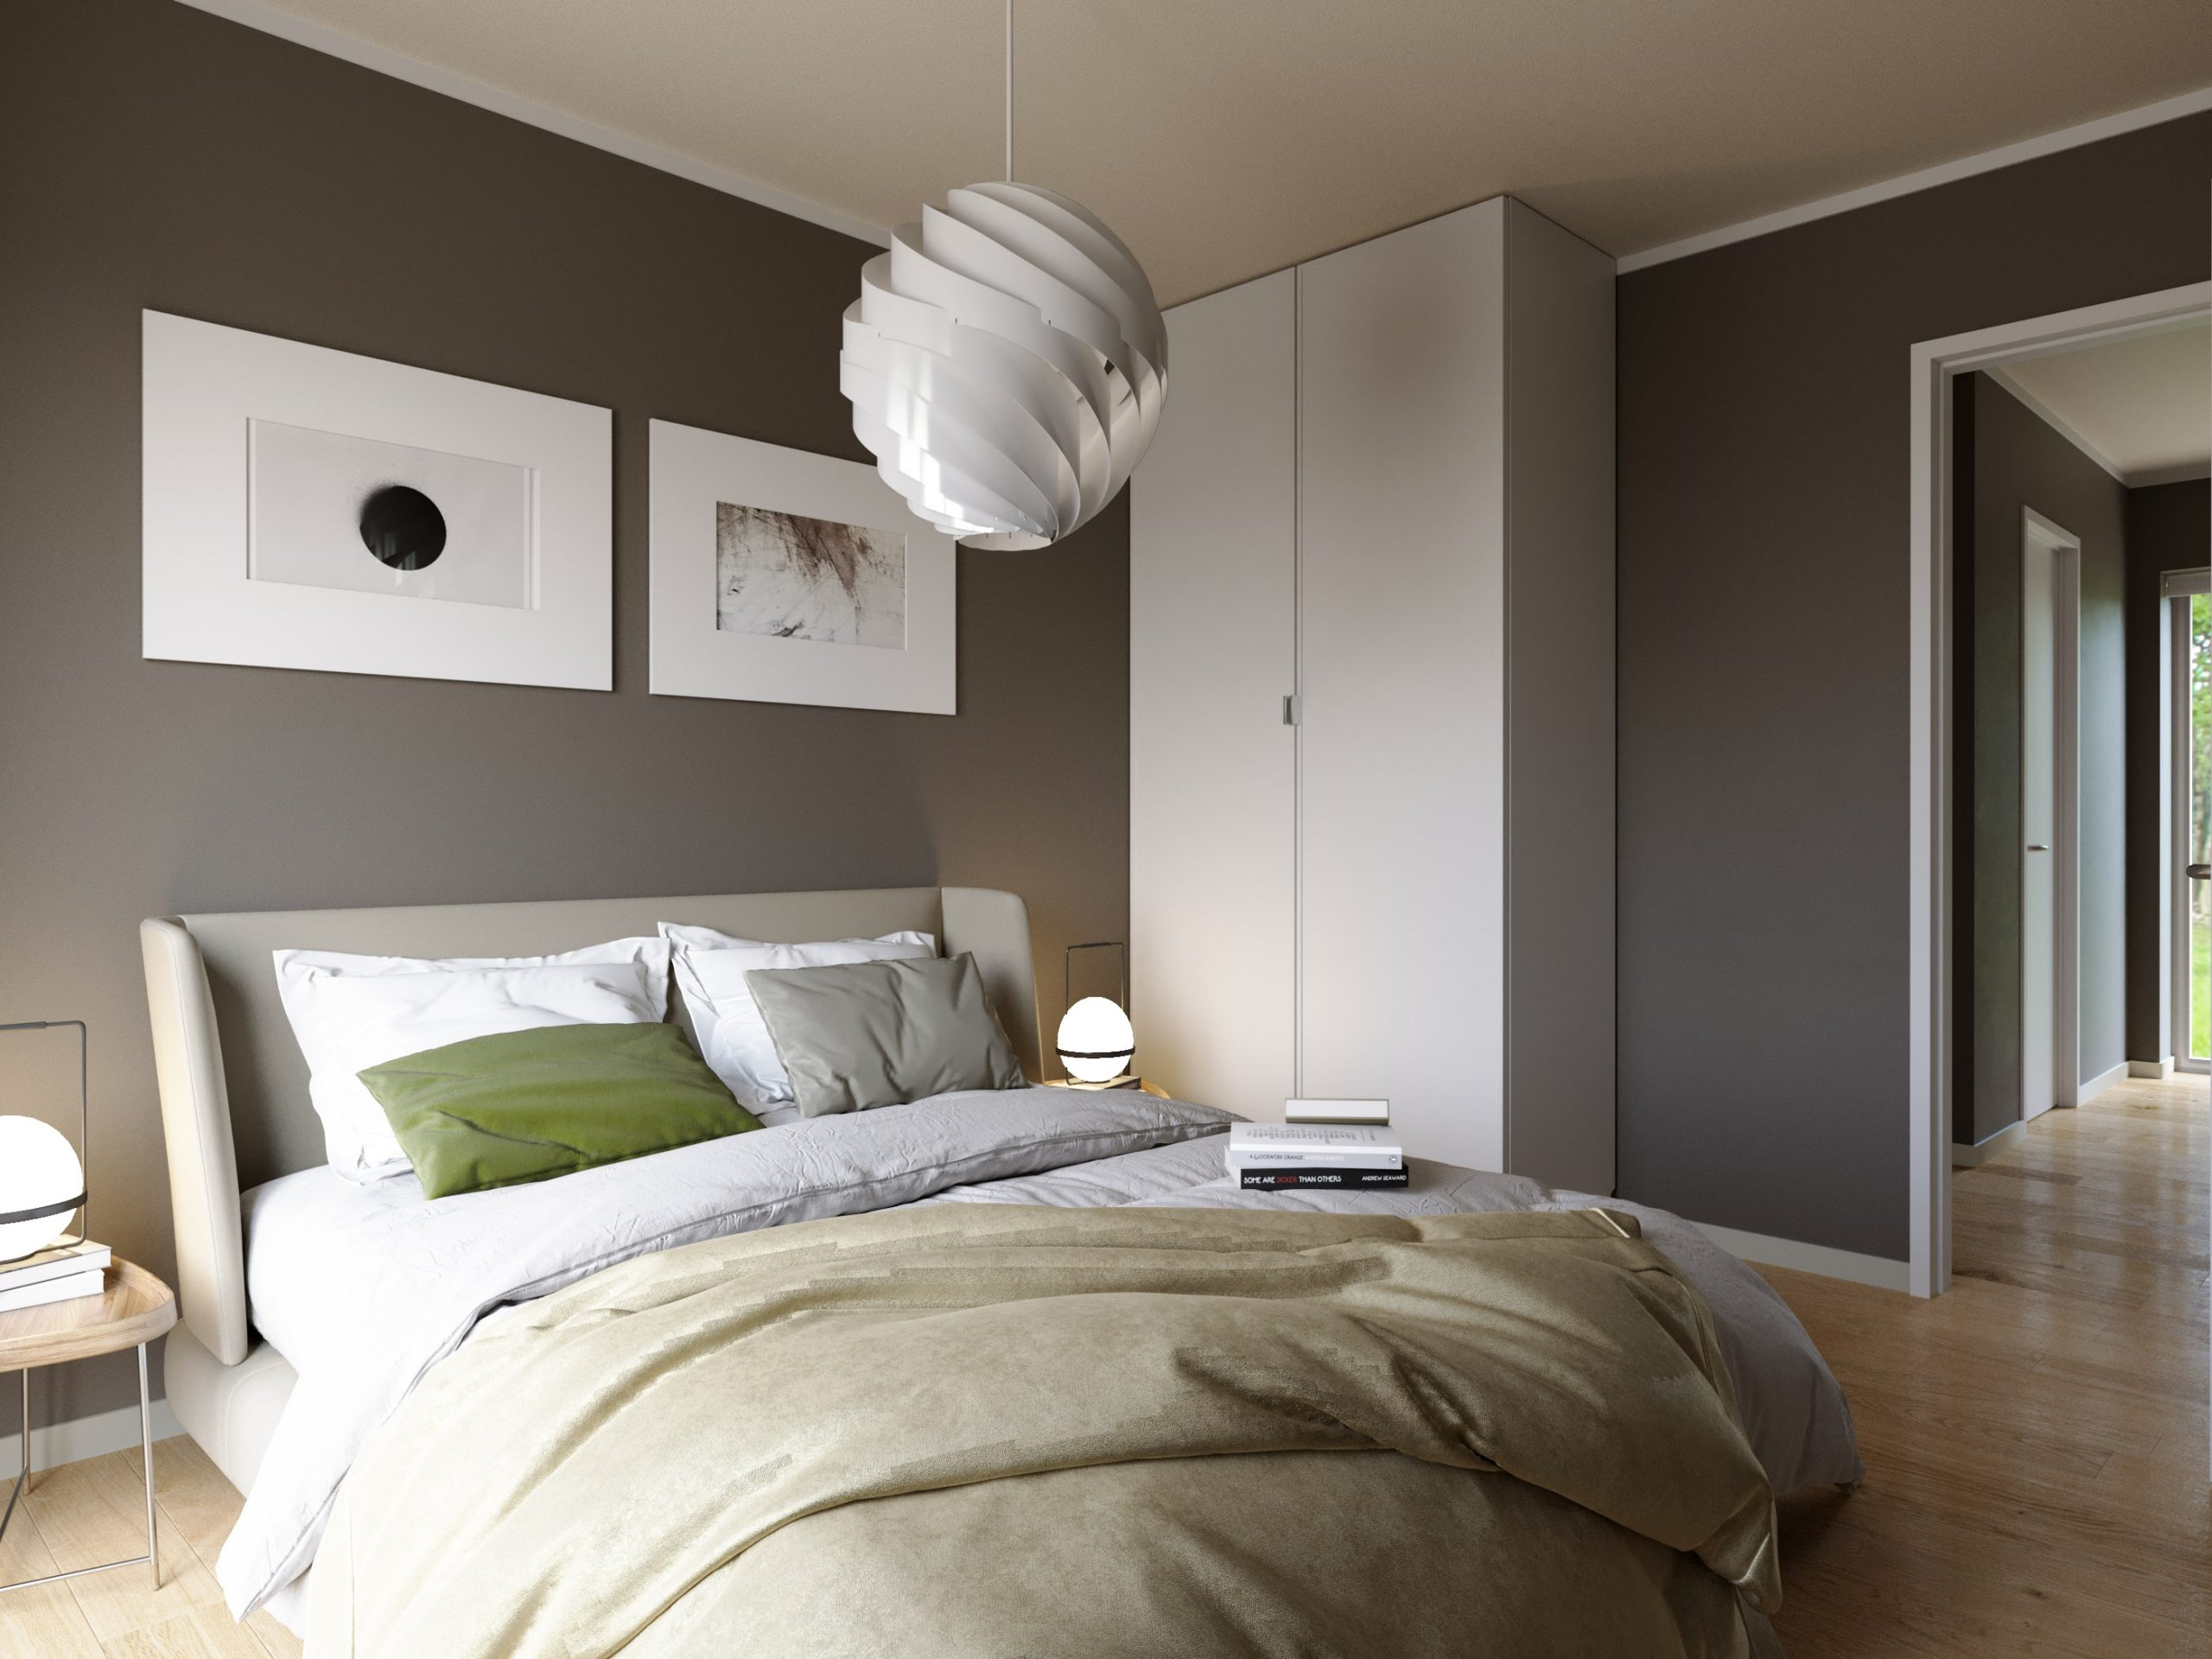 //vpva.pt/wp-content/uploads/2020/03/vpva.pt-3d-render-archviz-architecture-project-desgin-scandinavian-bedroom-outdoor-garden-grey-lamp-yellow-scaled.jpg